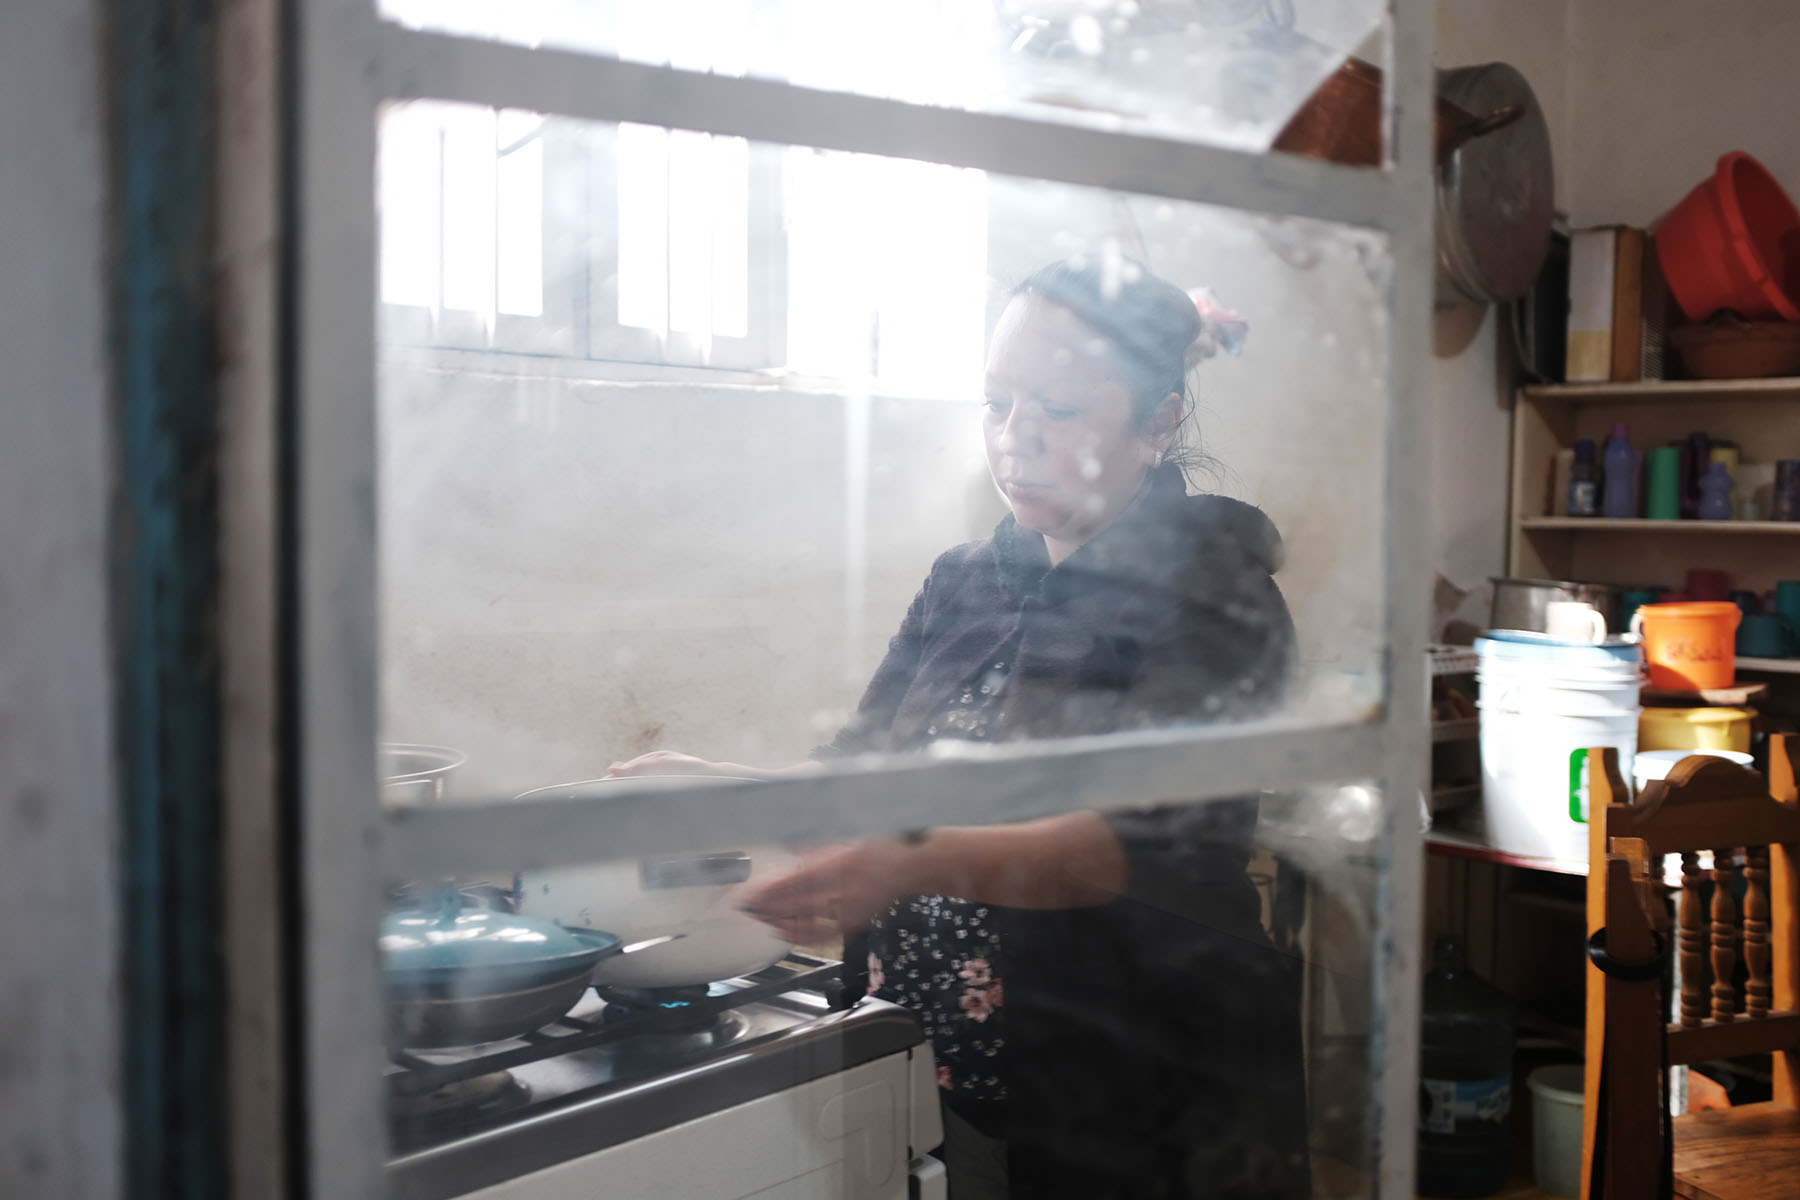 Guadalupe de Rayos, 36, cooks breakfast at her mother's home in Acambaro, Mexico. She was deported to Mexico on Feb. 9, 2017 the day after she had gone to the Phoenix offices of Immigration and Customs Enforcement for what until then had been a routine check-in.